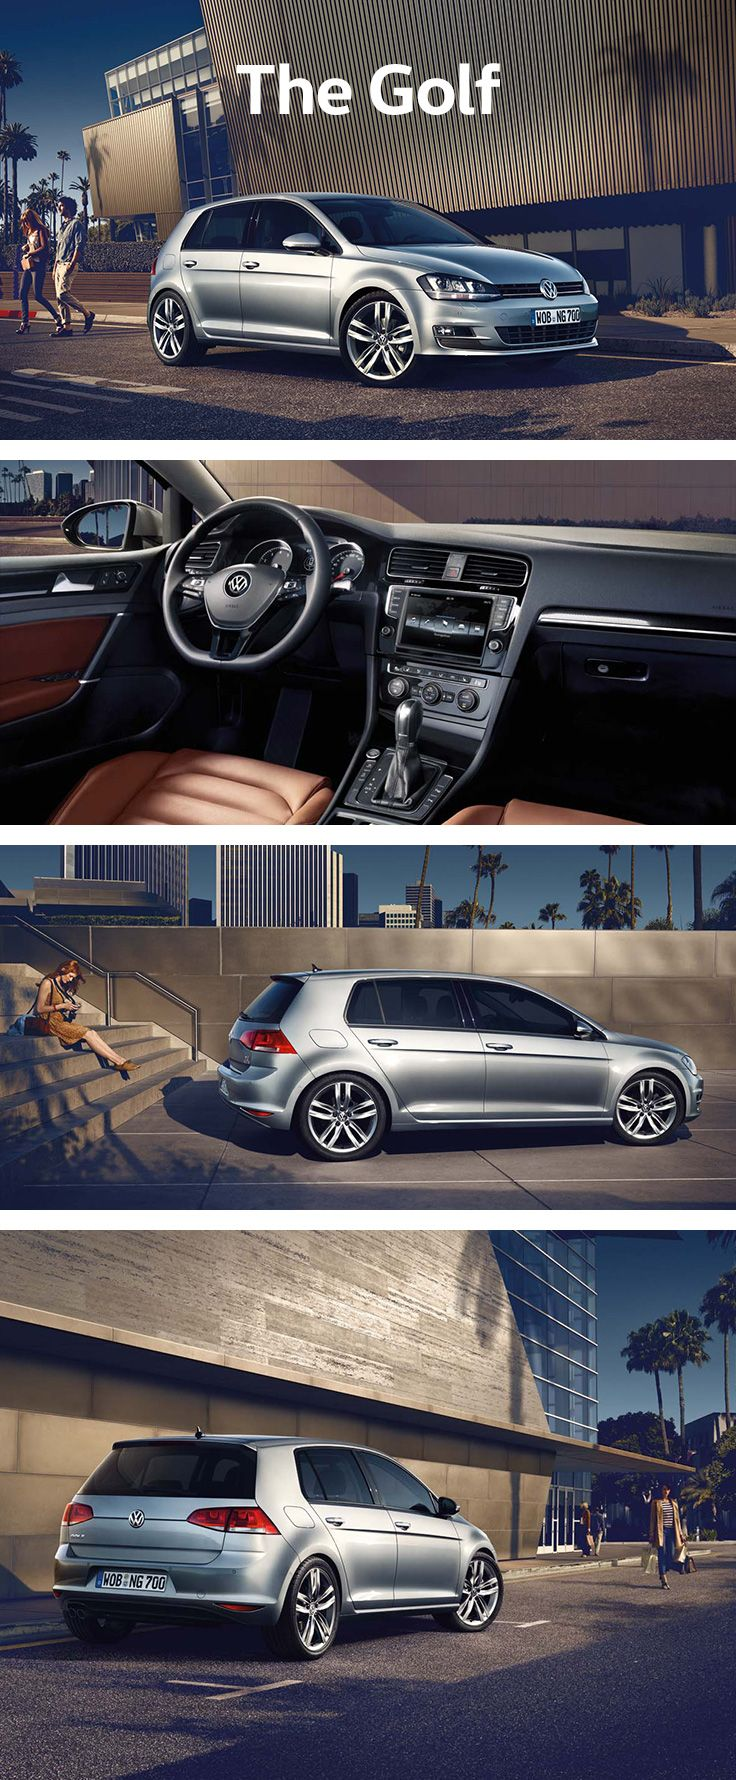 For easy everyday use, the Volkswagen Golf is a compact car with an especially low boot sill and height-adjustable boot floor for loading and unloading heavy items. Its characteristic silhouette with the C-pillar remains essential to the design – while the extended wheelbase, shorter projections and precise lines lend the Golf timeless, elegant dynamics.